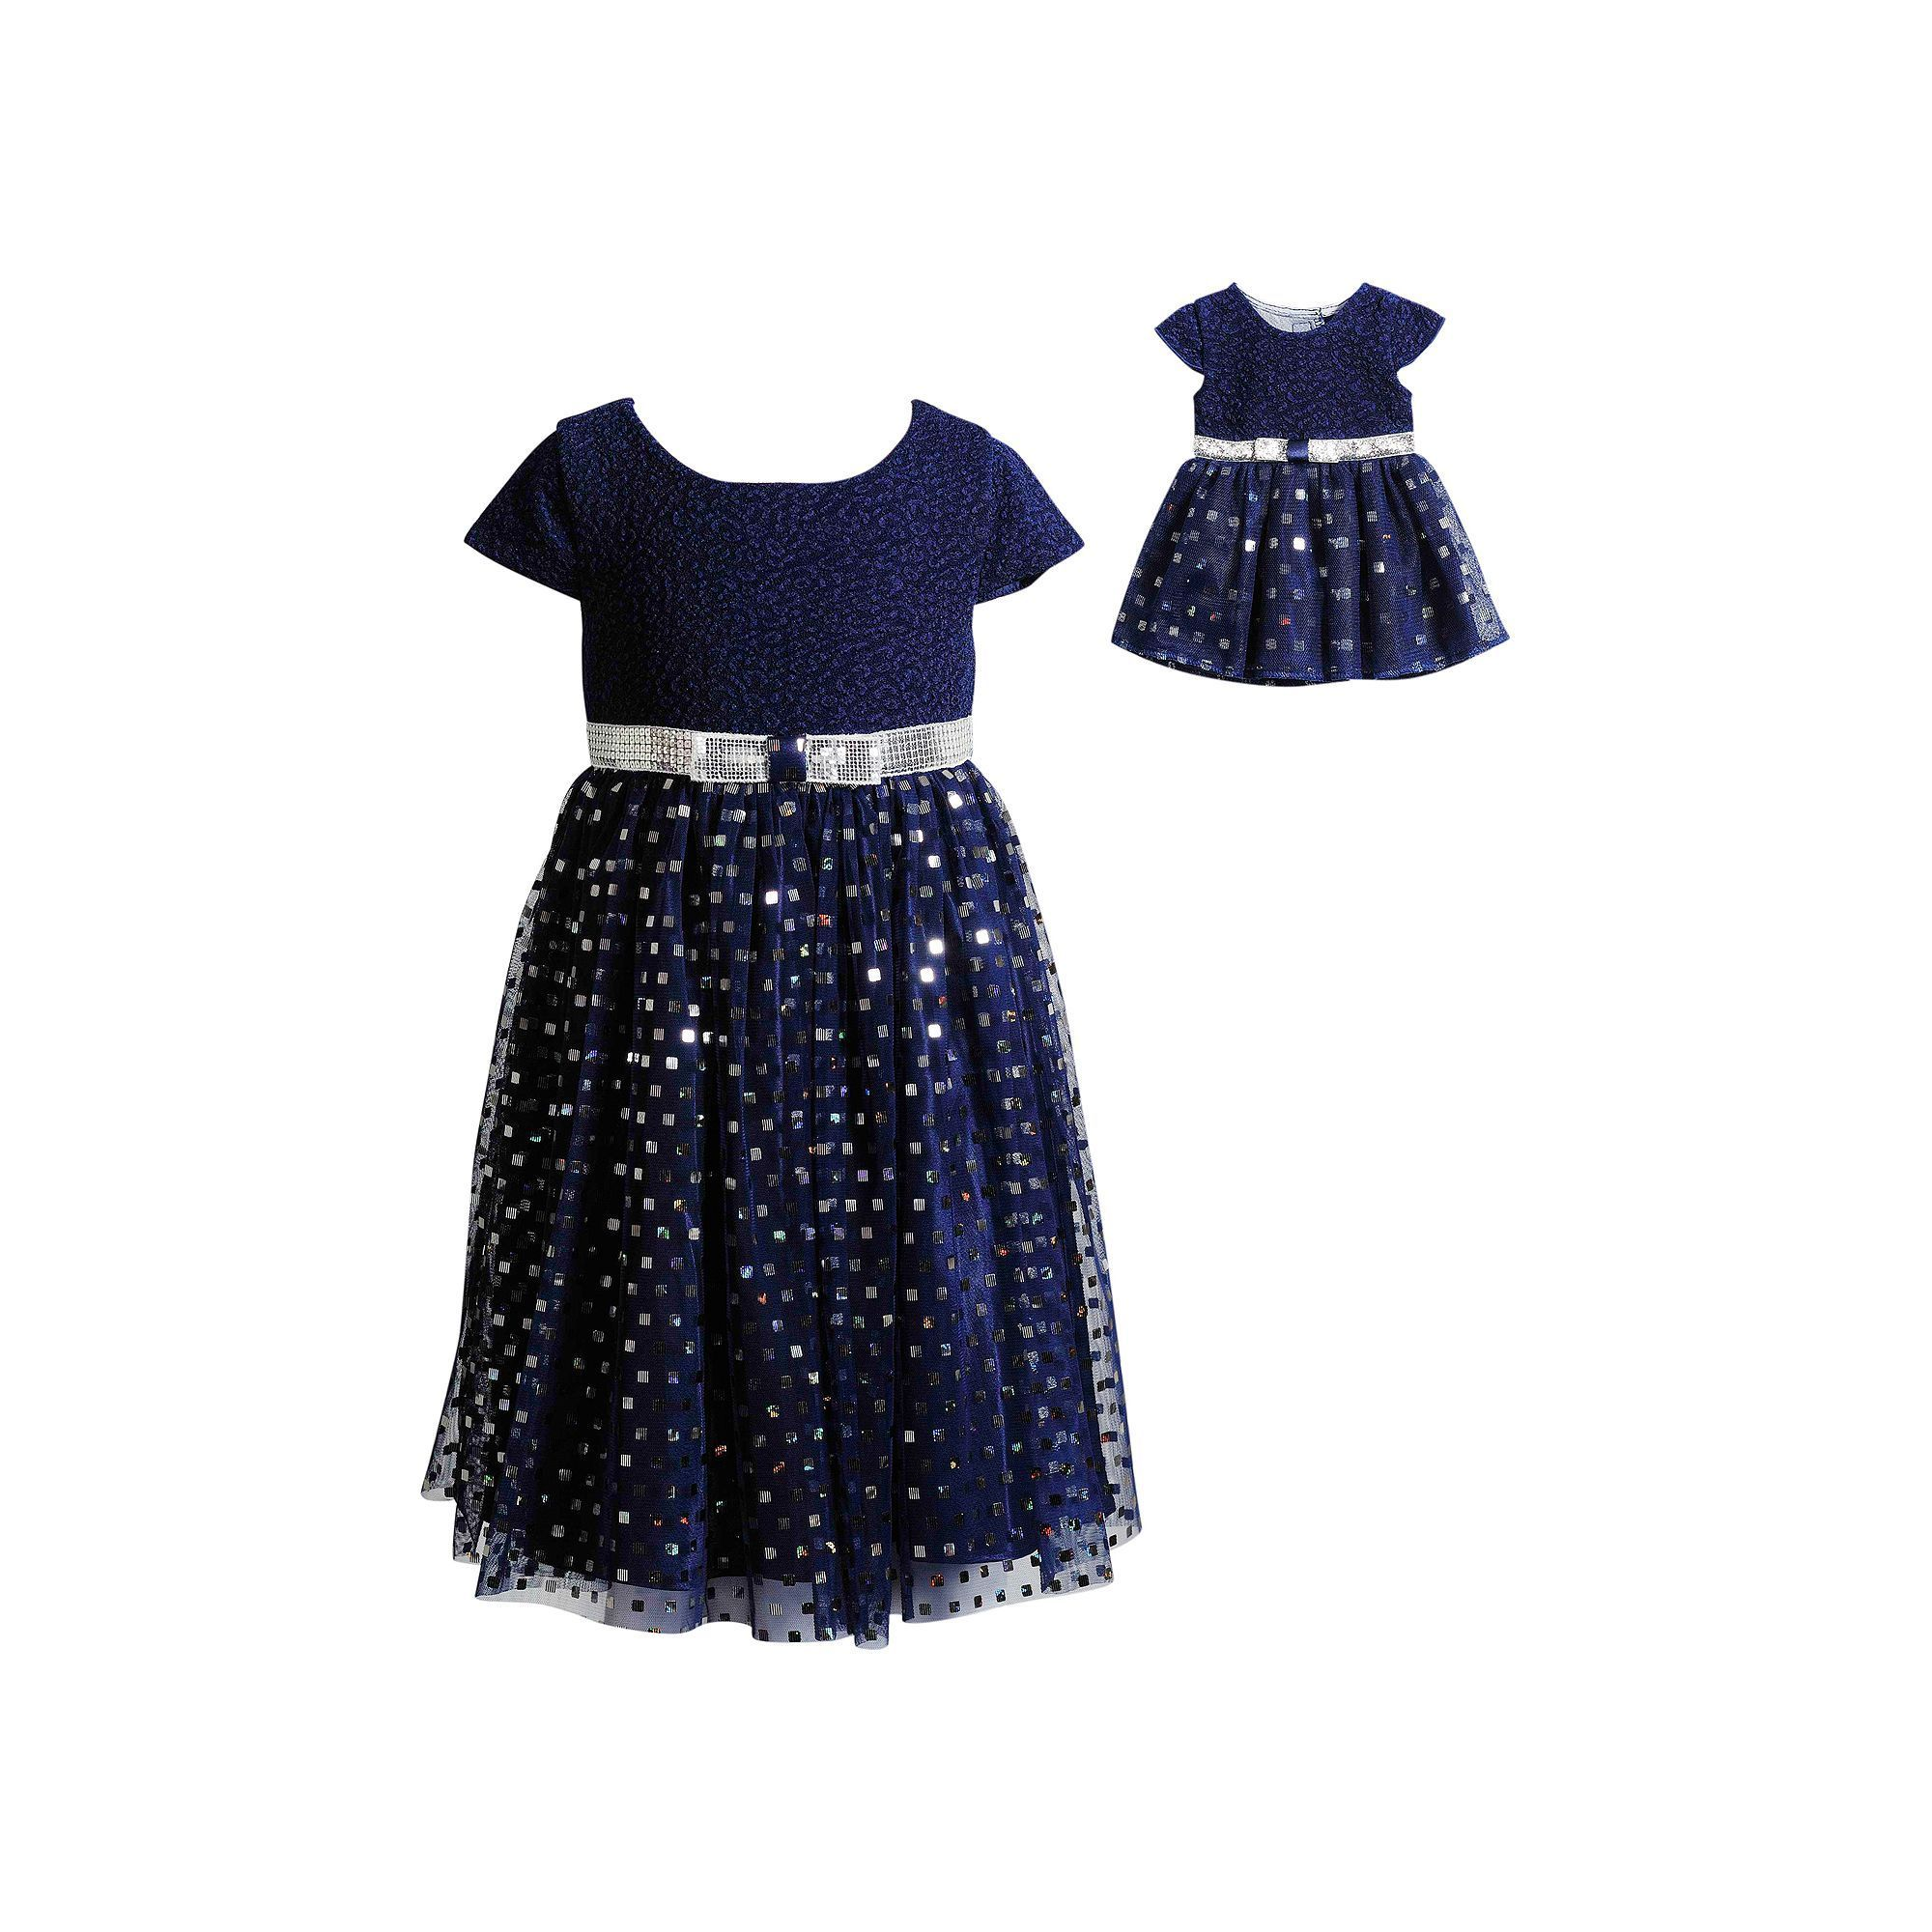 3fd0d4384be89 Girls 4-14 Dollie & Me Sequined Mesh Dress, Size: 4, Blue (Navy ...